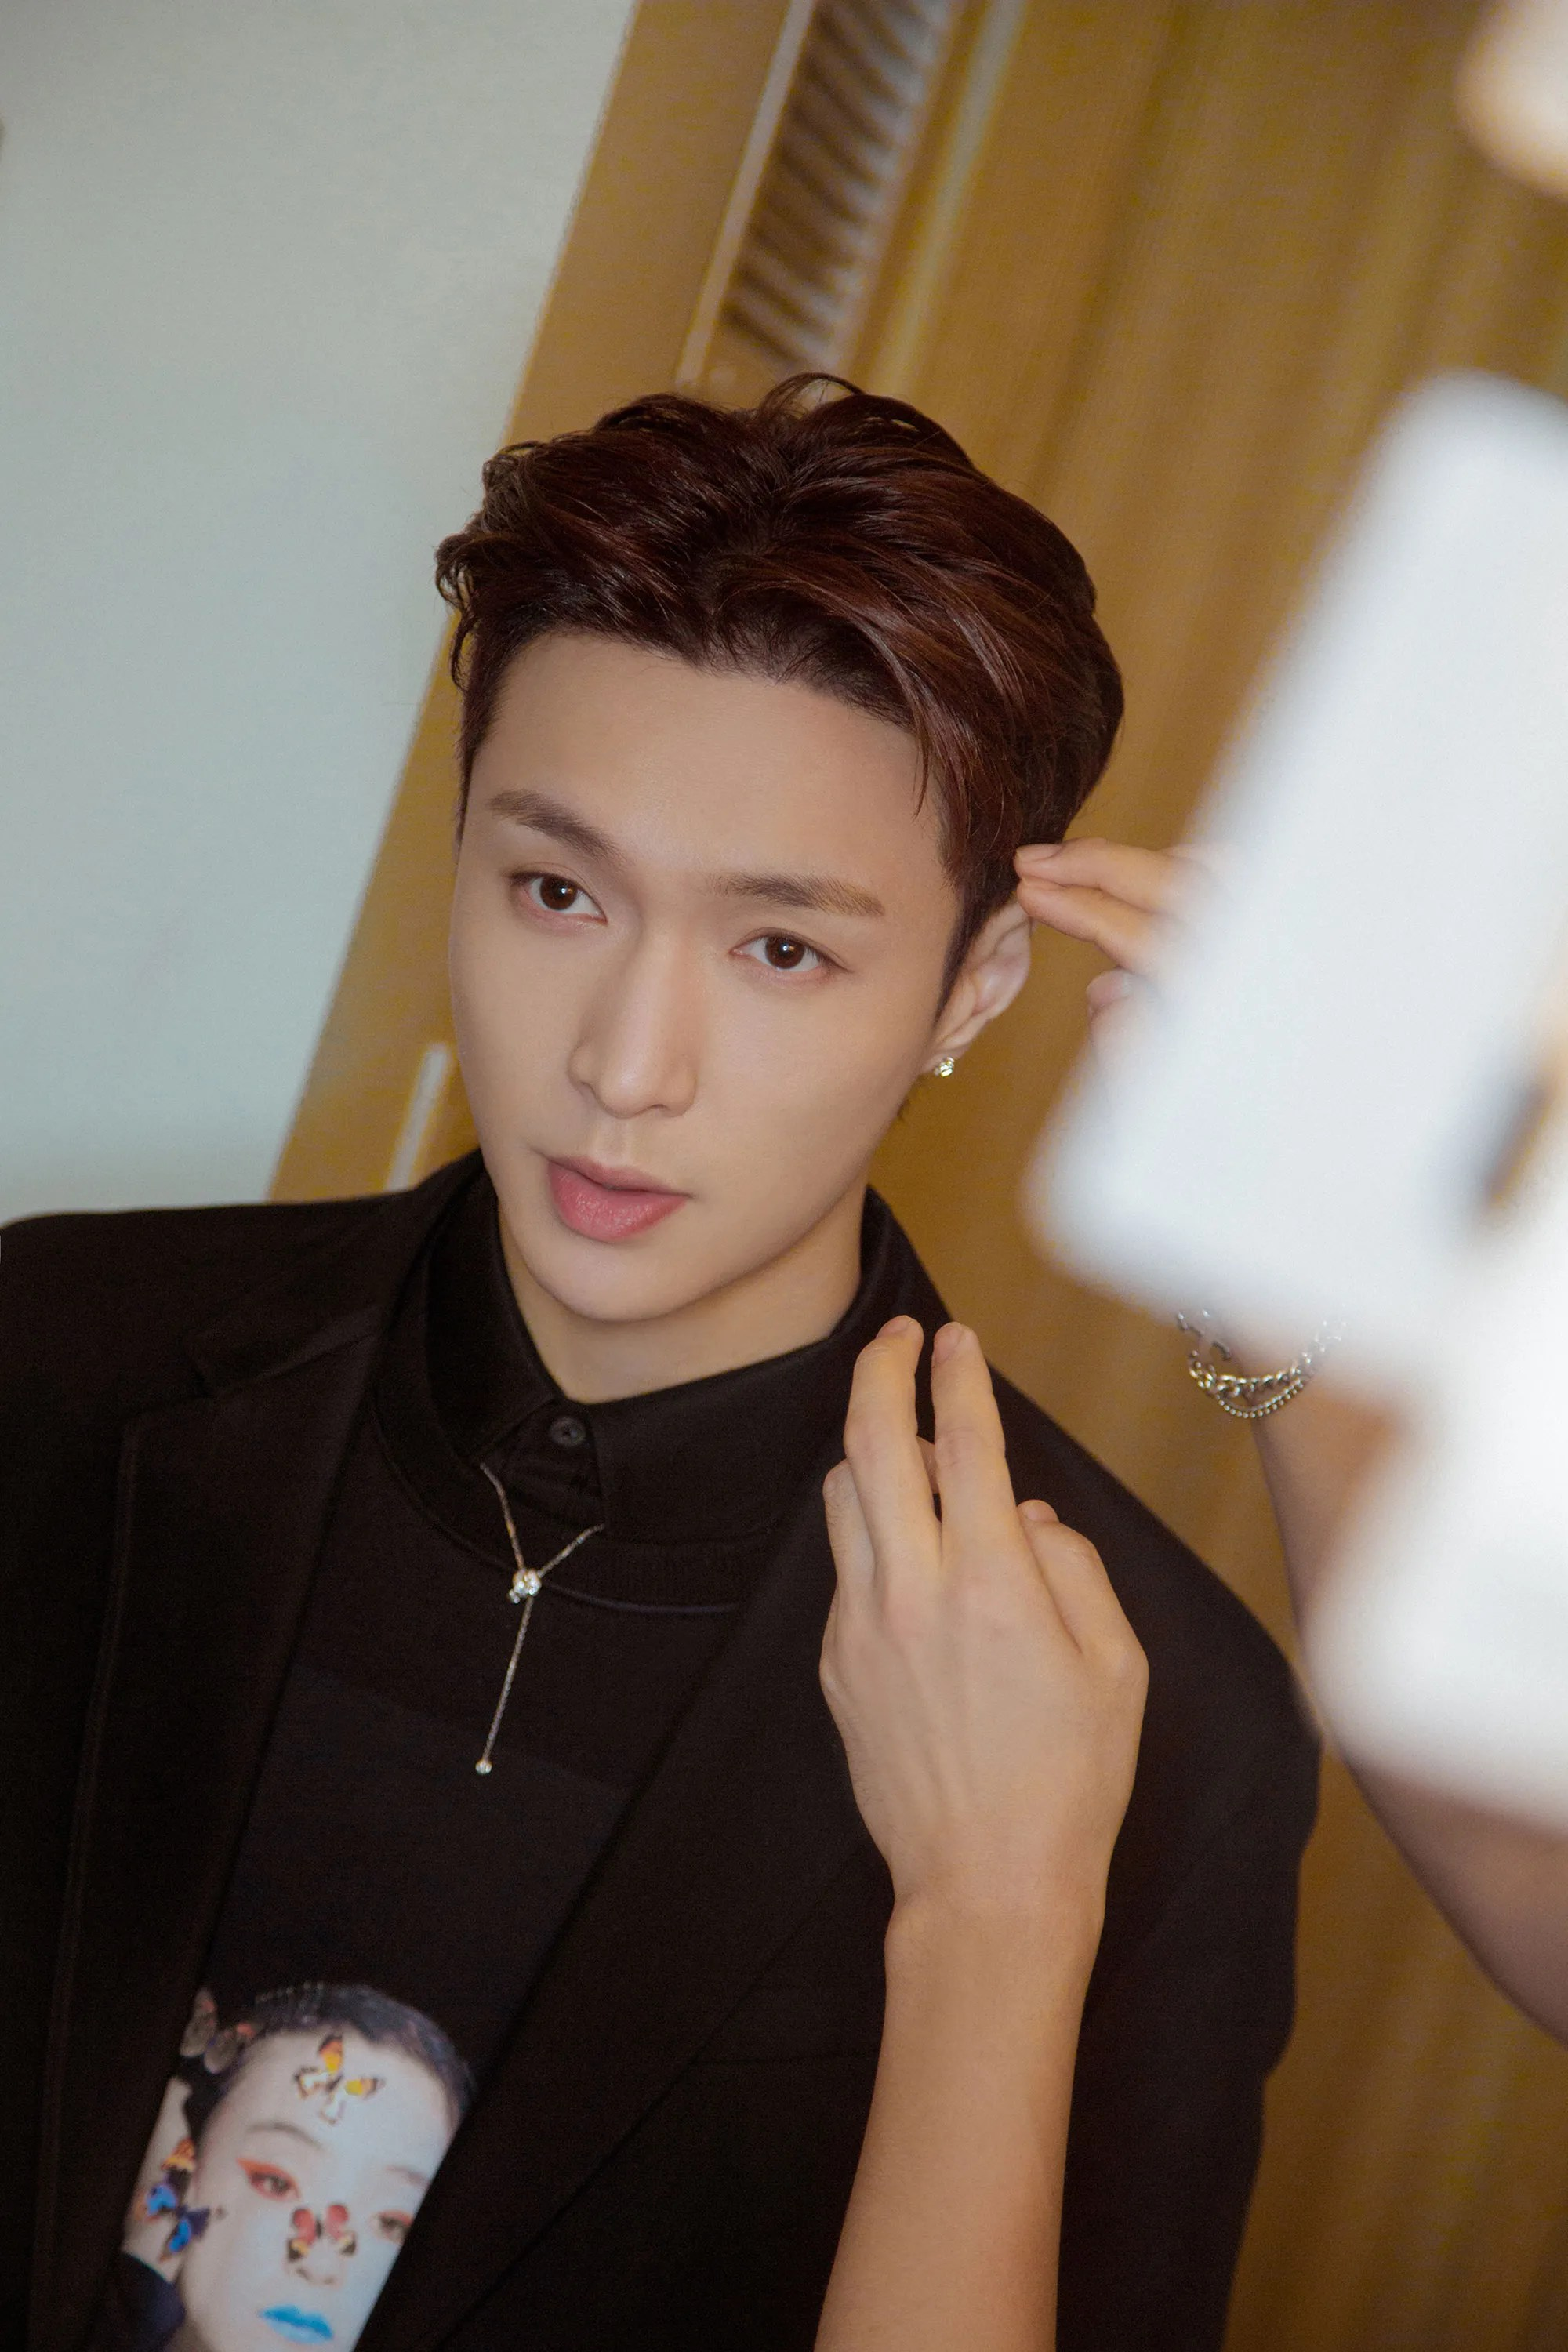 Chinese Pop Star Lay Zhang Goes Inside the 2019 Grammys - Vogue